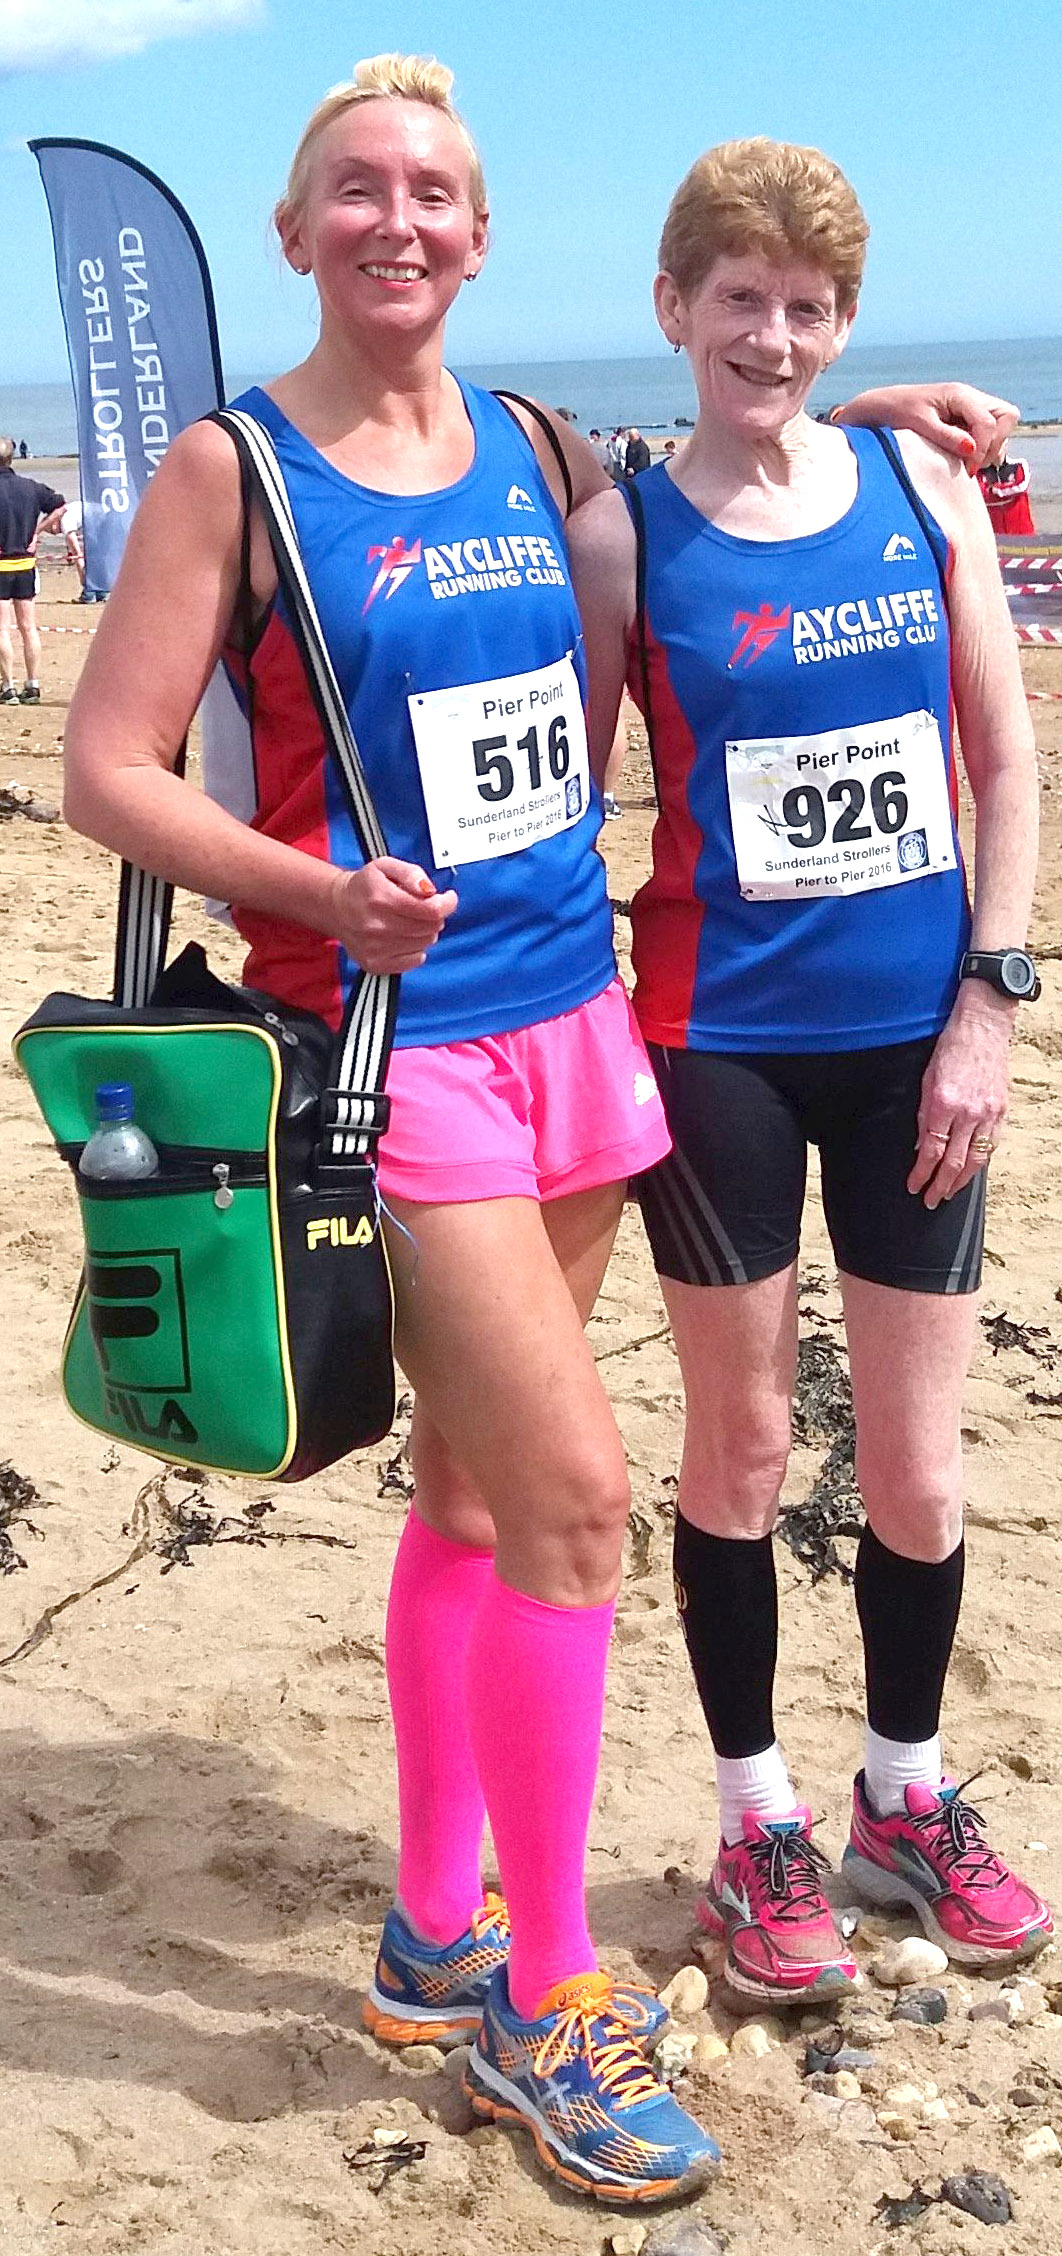 Aycliffe Runners in Lord Stones Café & Pier to Pier Races